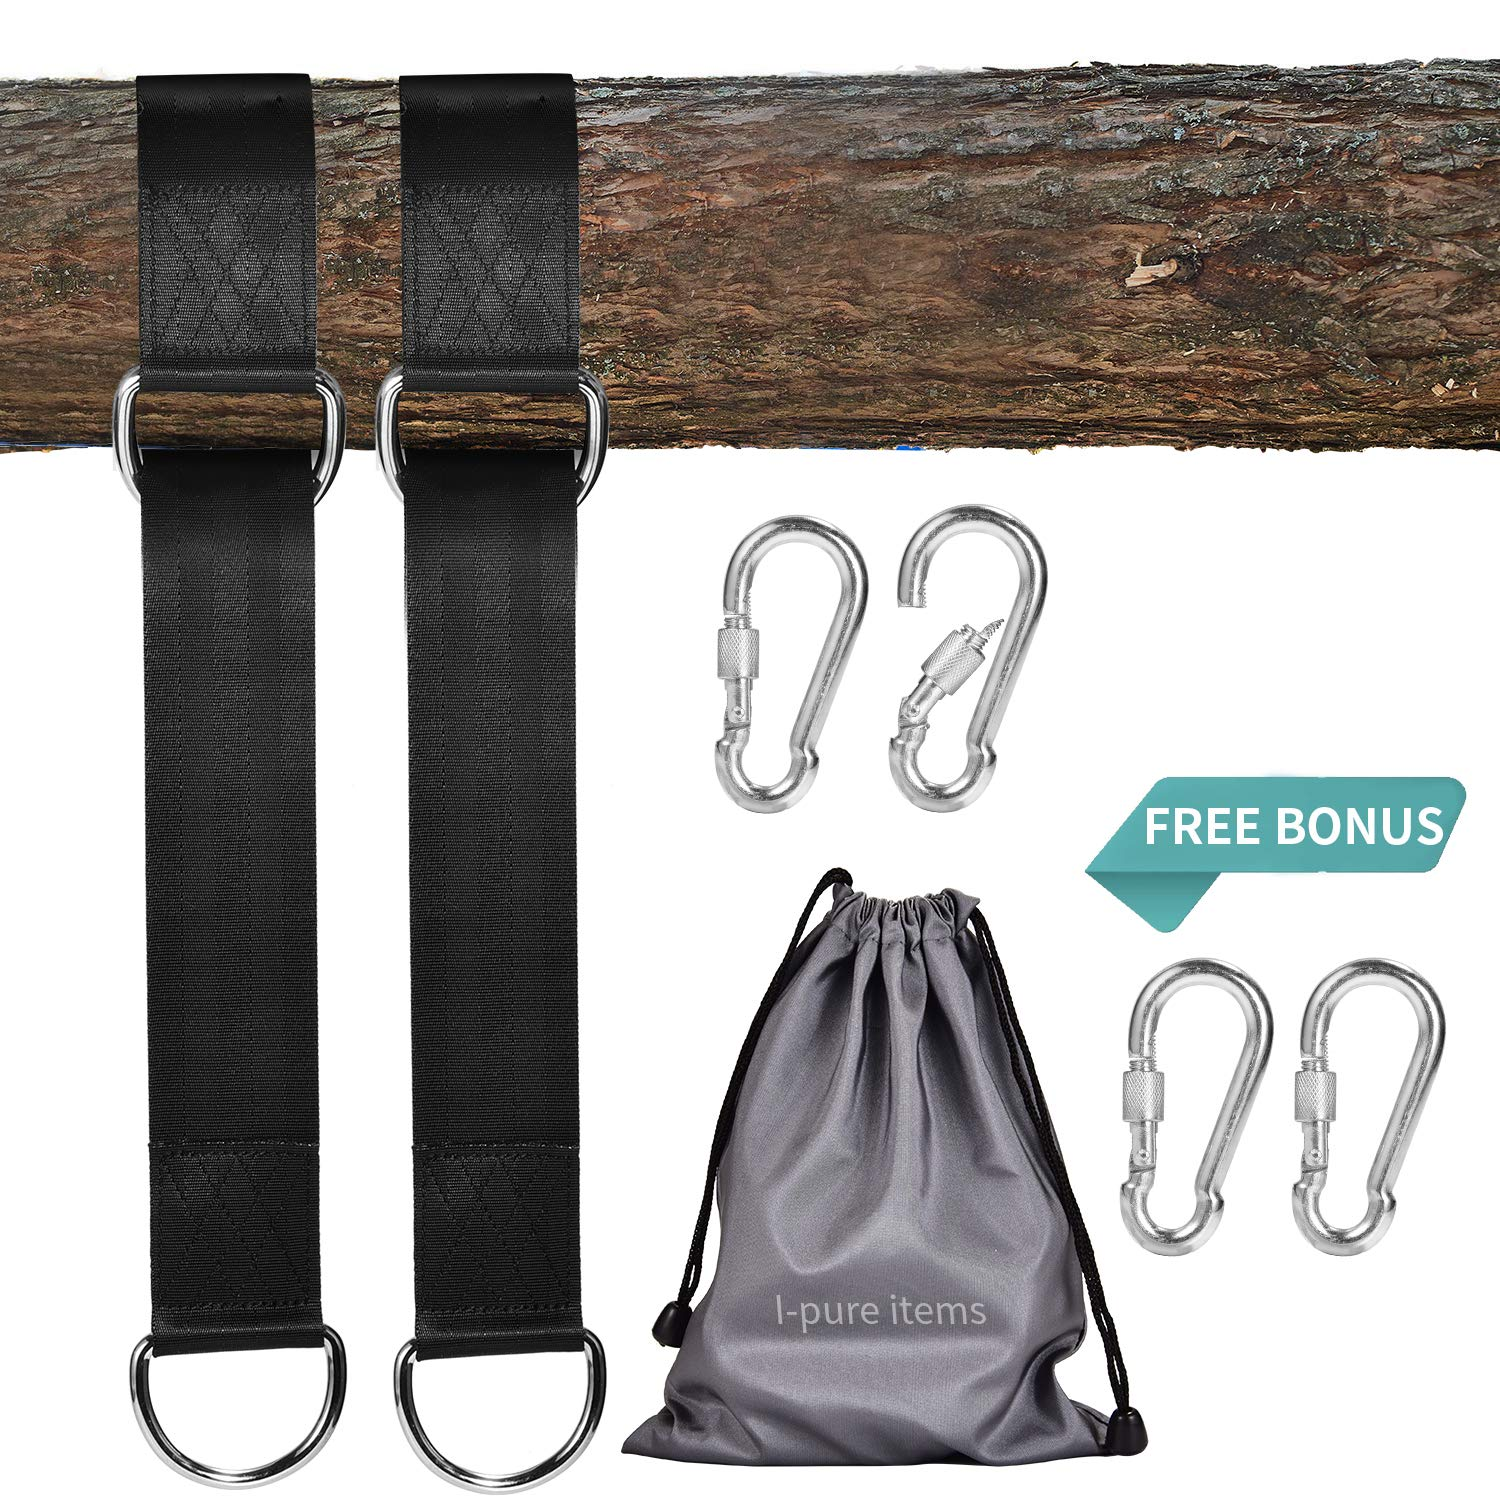 I-pure items Hammock Straps (5ft) - 2 PCS Tree Swing Straps Hanging Kit Holds 2200 LB with 4 Heavy Duty Carabiners - Camping Hammock Rope Straps Accessories - Compact & Easy to Set Up by I-pure items